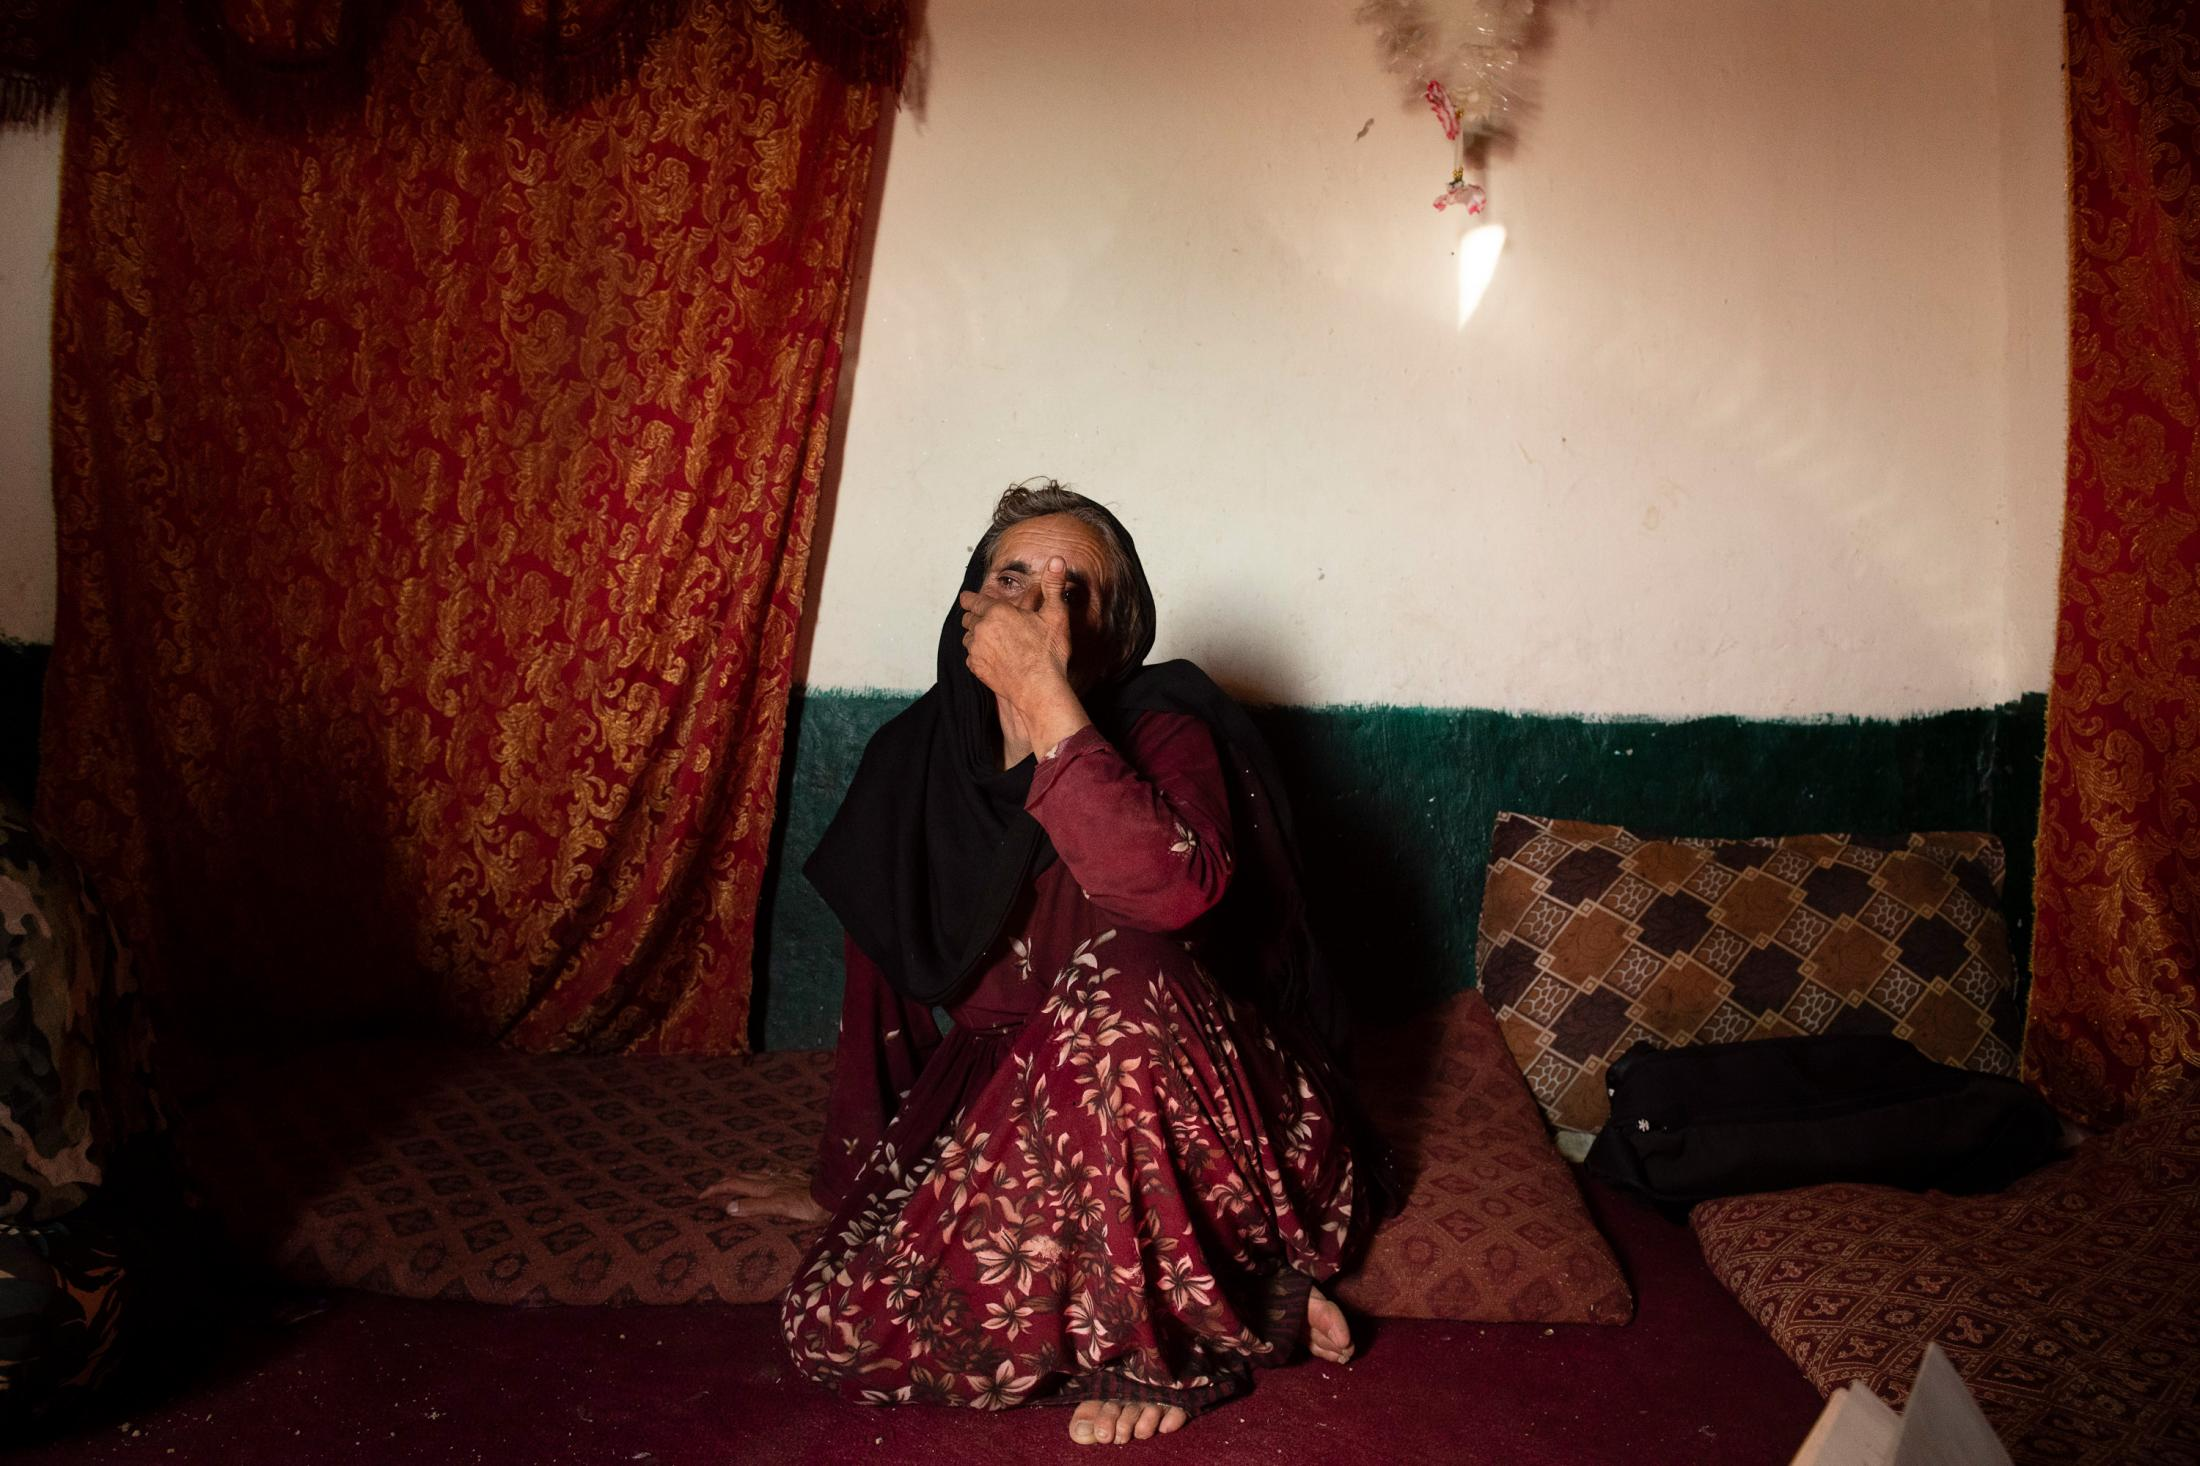 DOAGU VILLAGE   AFGHANISTAN   8/27/18   Aziza, in her 60s, mother of Amanat Khan (27) breaks into tear every time the name of her son is brought up. He ANP officer, was shot in fightings against Taliban in Niazi Village, not too far from their home village. He is survived by his wife and their four children, the youngest being 46 days old, who was orphaned before she was even born. Kiana Hayeri for the New York Times